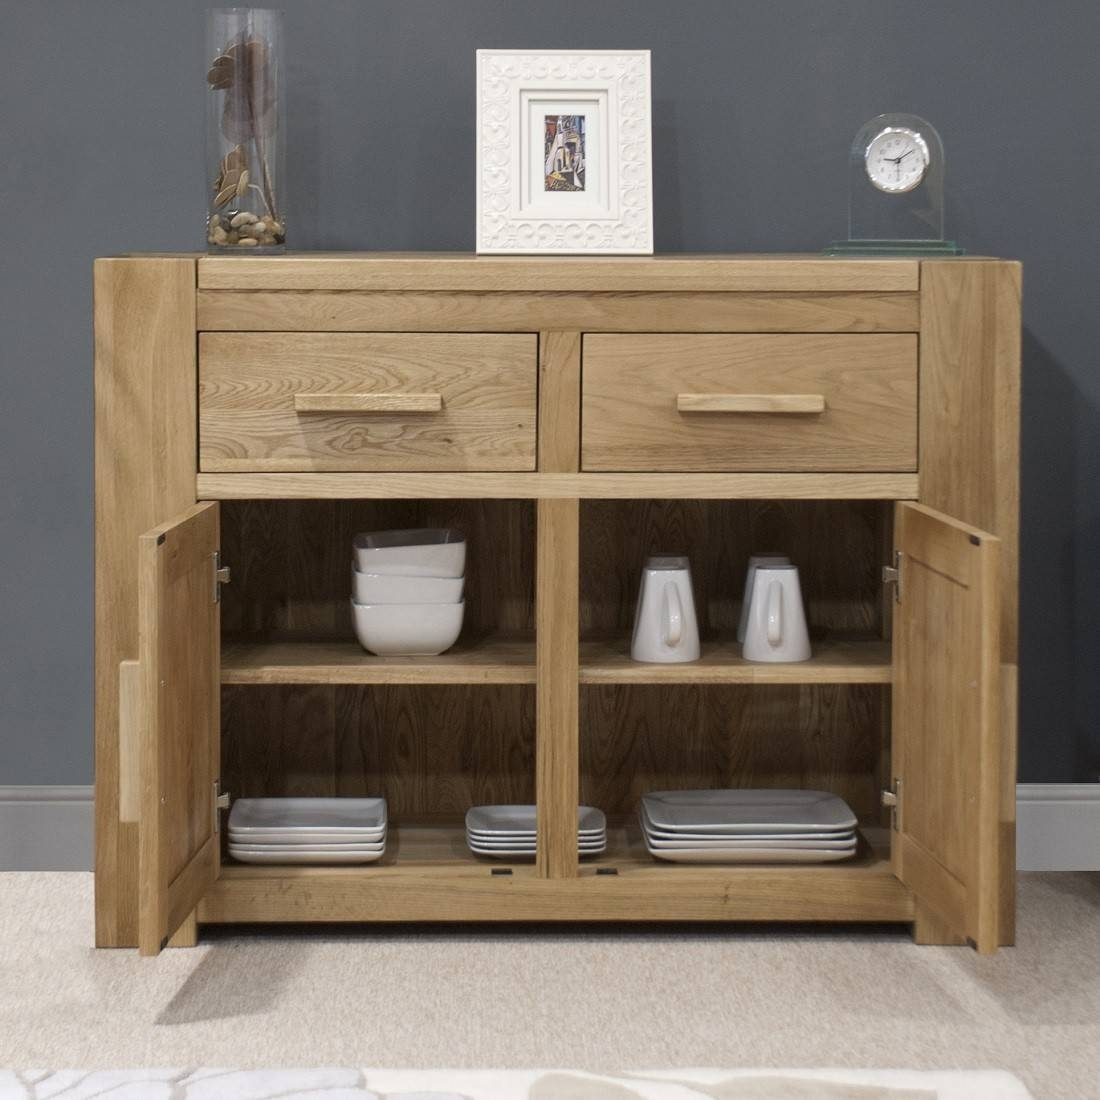 Trend Solid Oak Small 2 Door Sideboard | Oak Furniture Uk With Regard To Newest Solid Oak Small Sideboards (View 11 of 15)